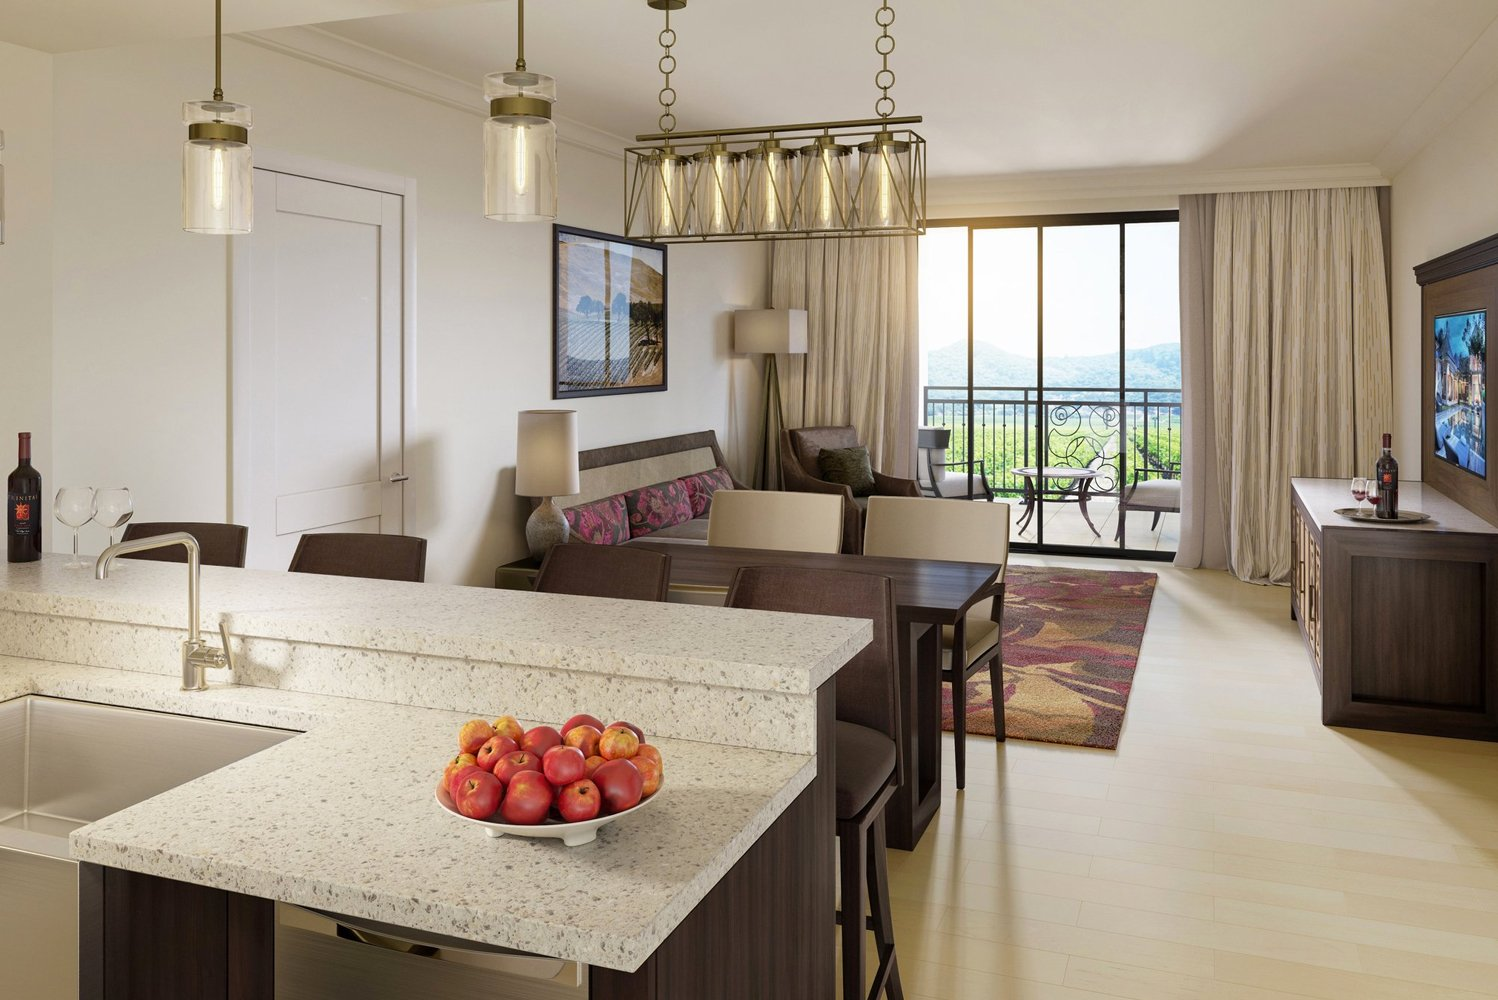 Costa Mesa, California-based Hatch Design Group will oversee the resort's interiors, which will reflect a Tuscany-inspired aesthetic.